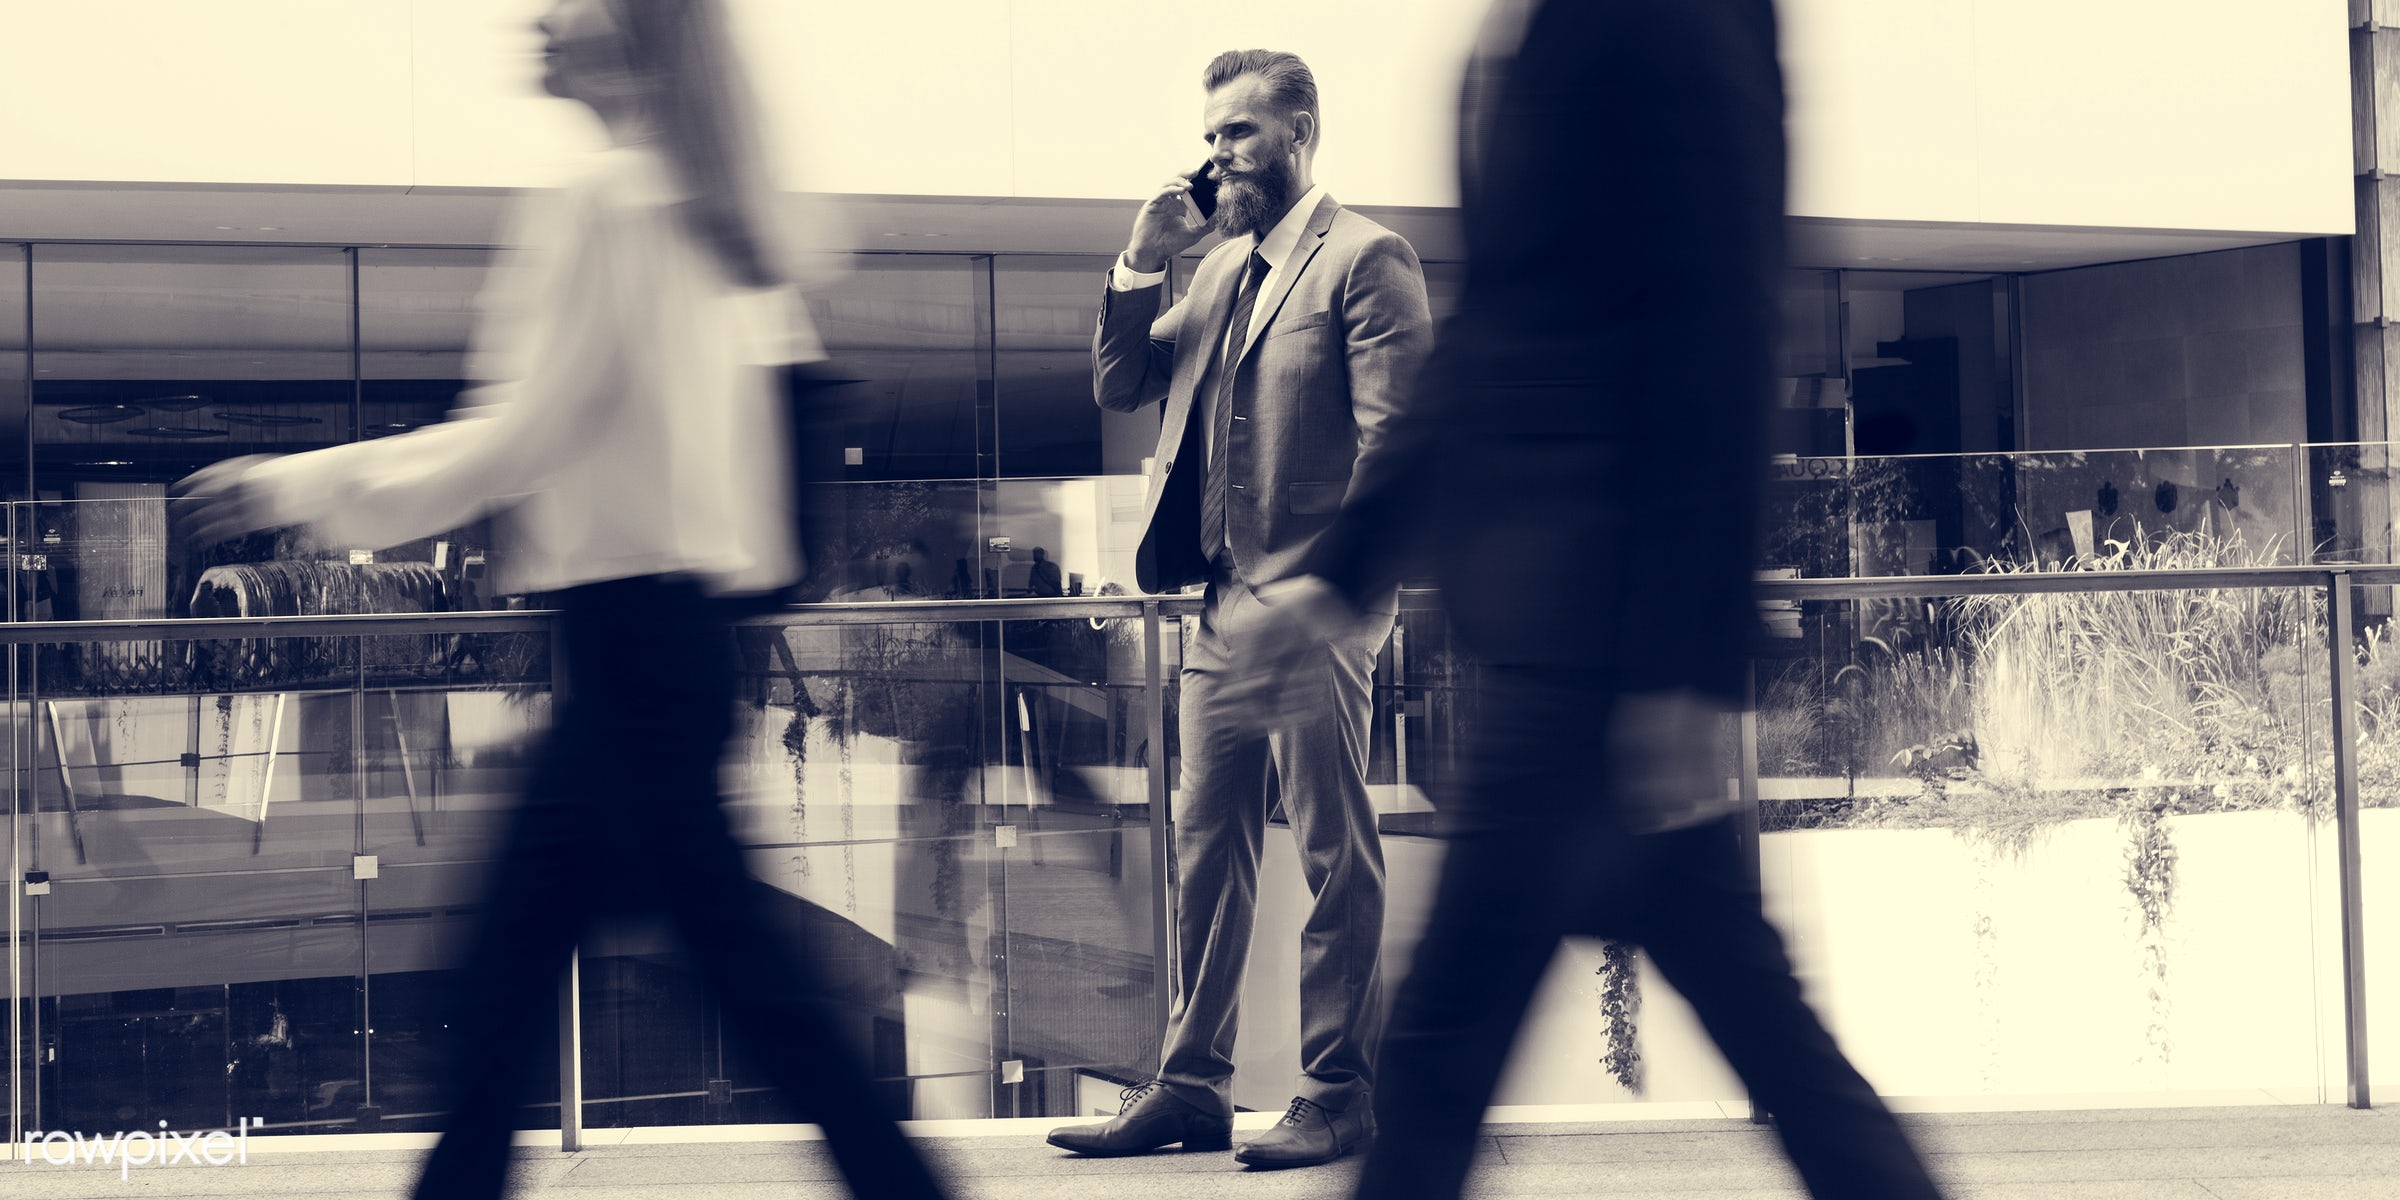 expression, update, face, phone, person, suit and tie, white collar worker, busy, indoors, calling, customer, people,...